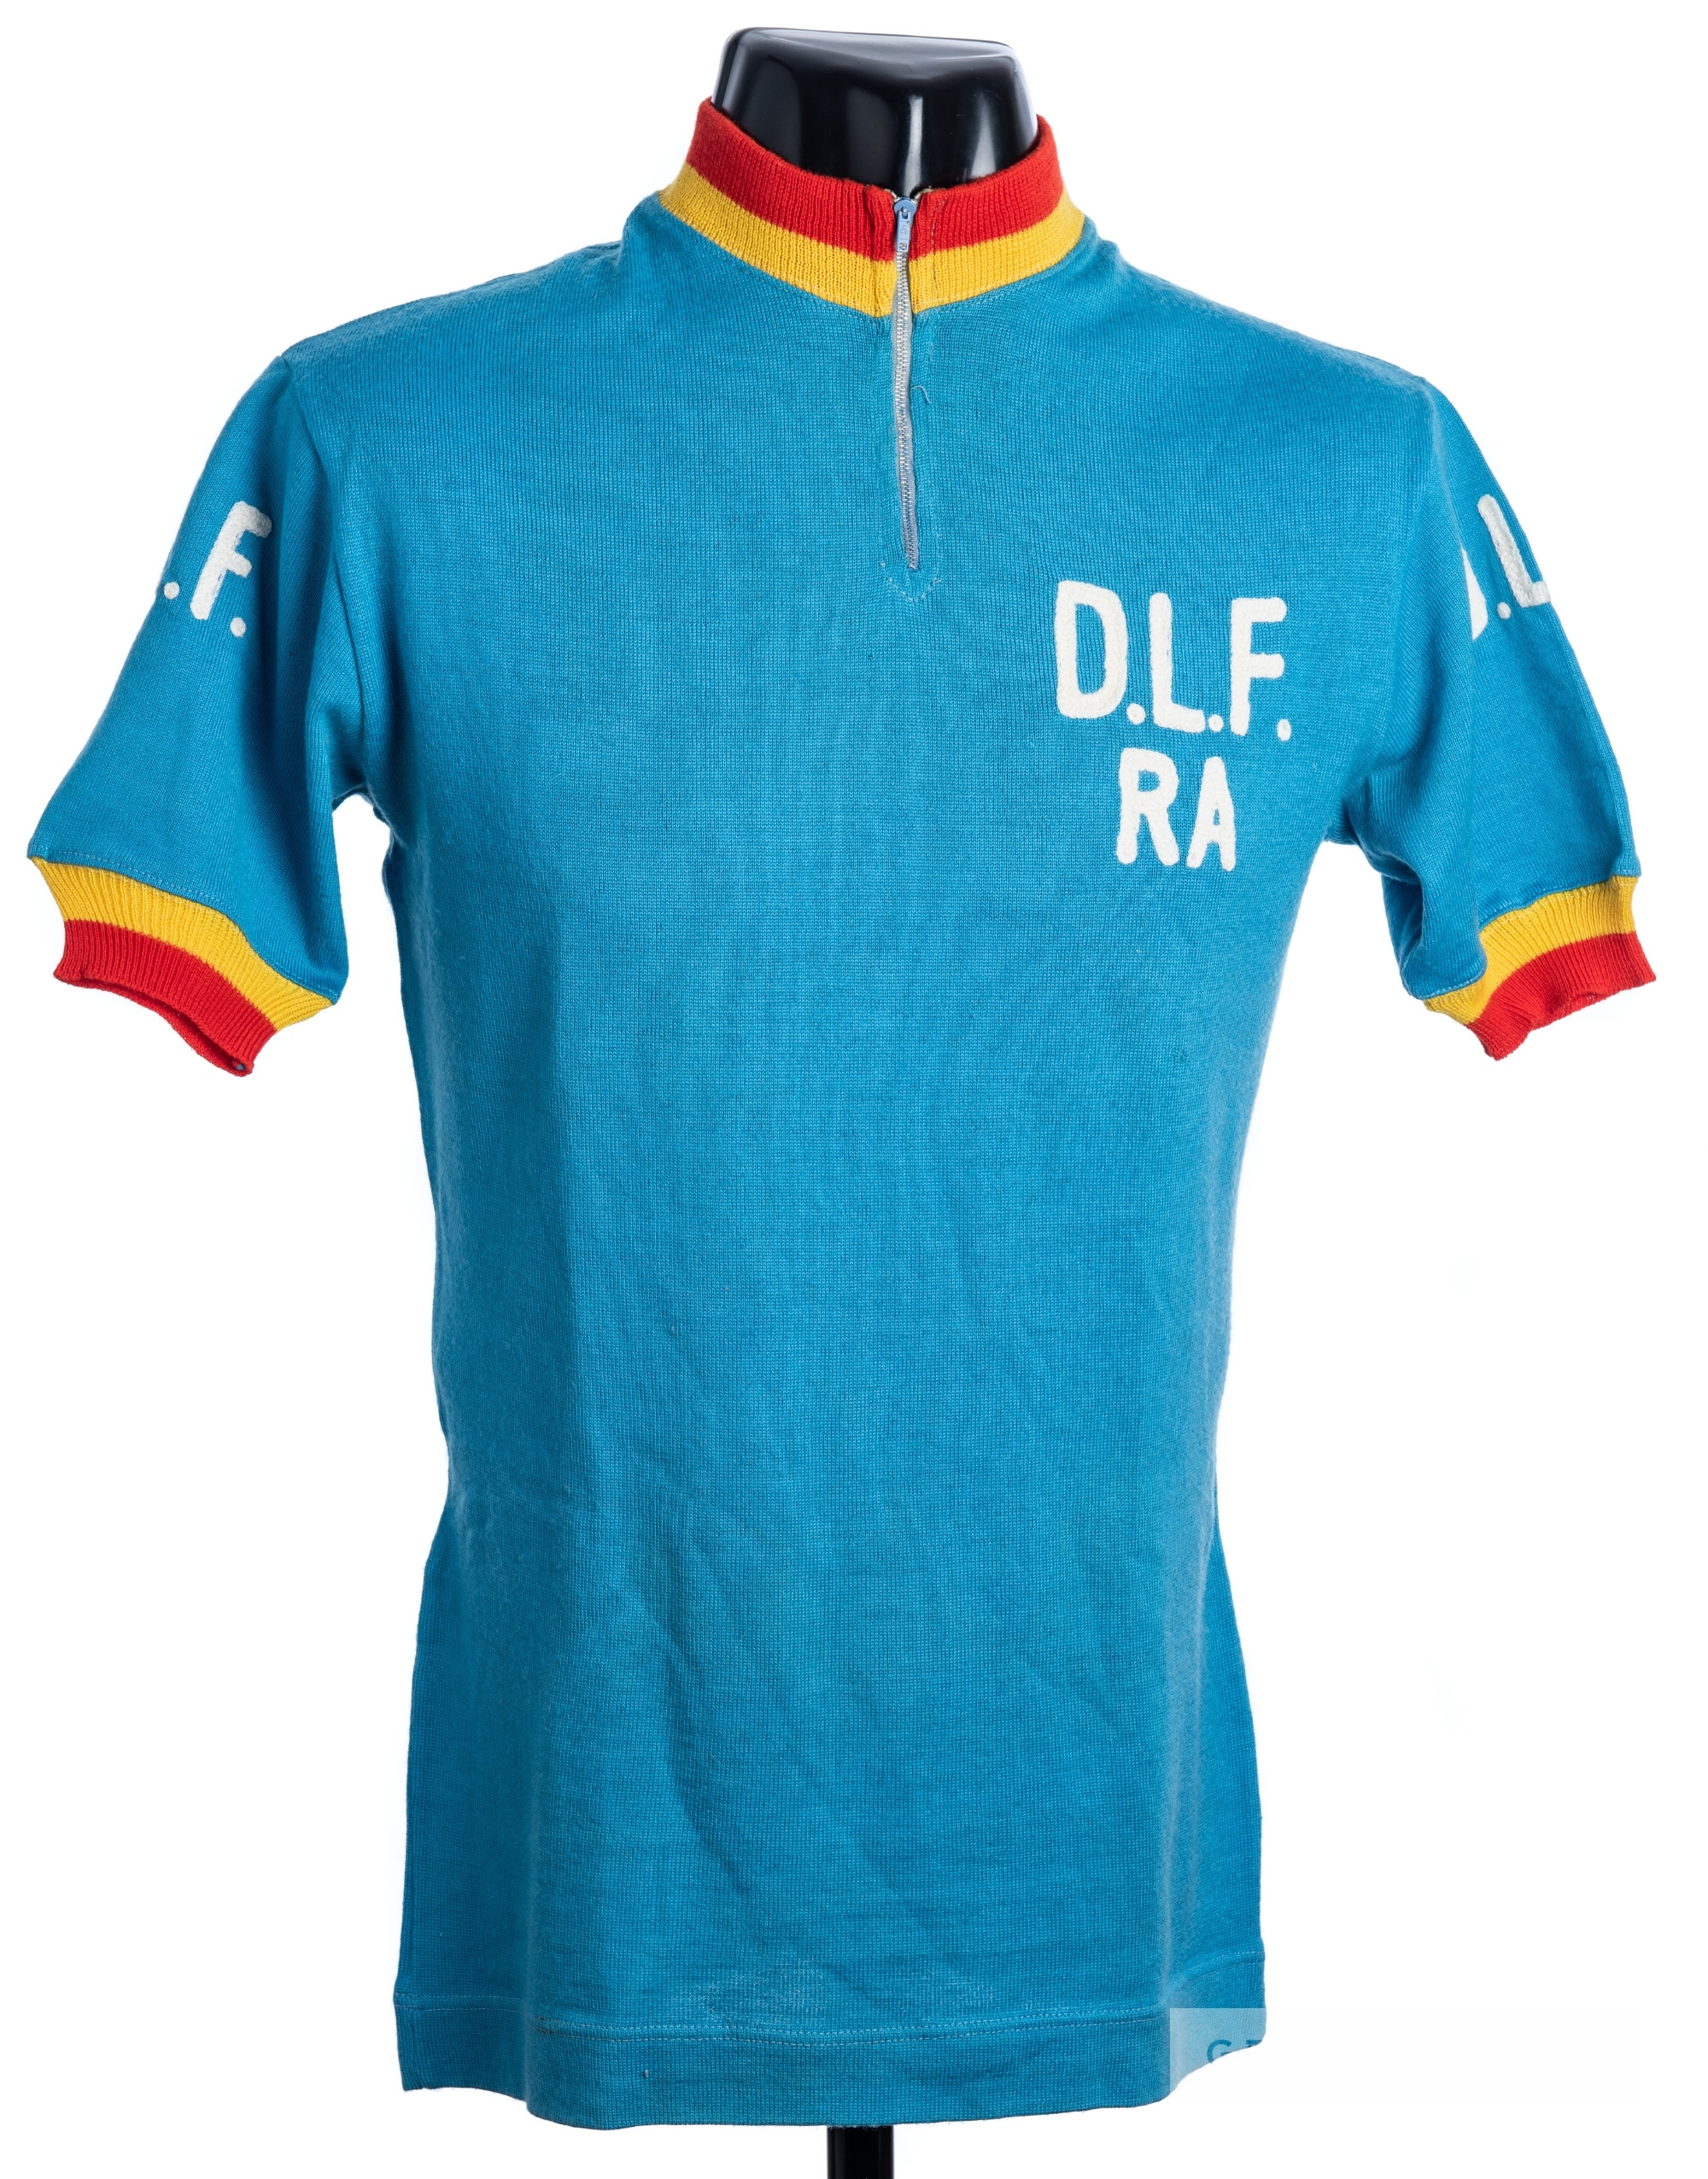 1975 blue, yellow and red vintage Dopolavoro Ferroviario Ravenna Italian Cycling team race jersey, - Image 3 of 4